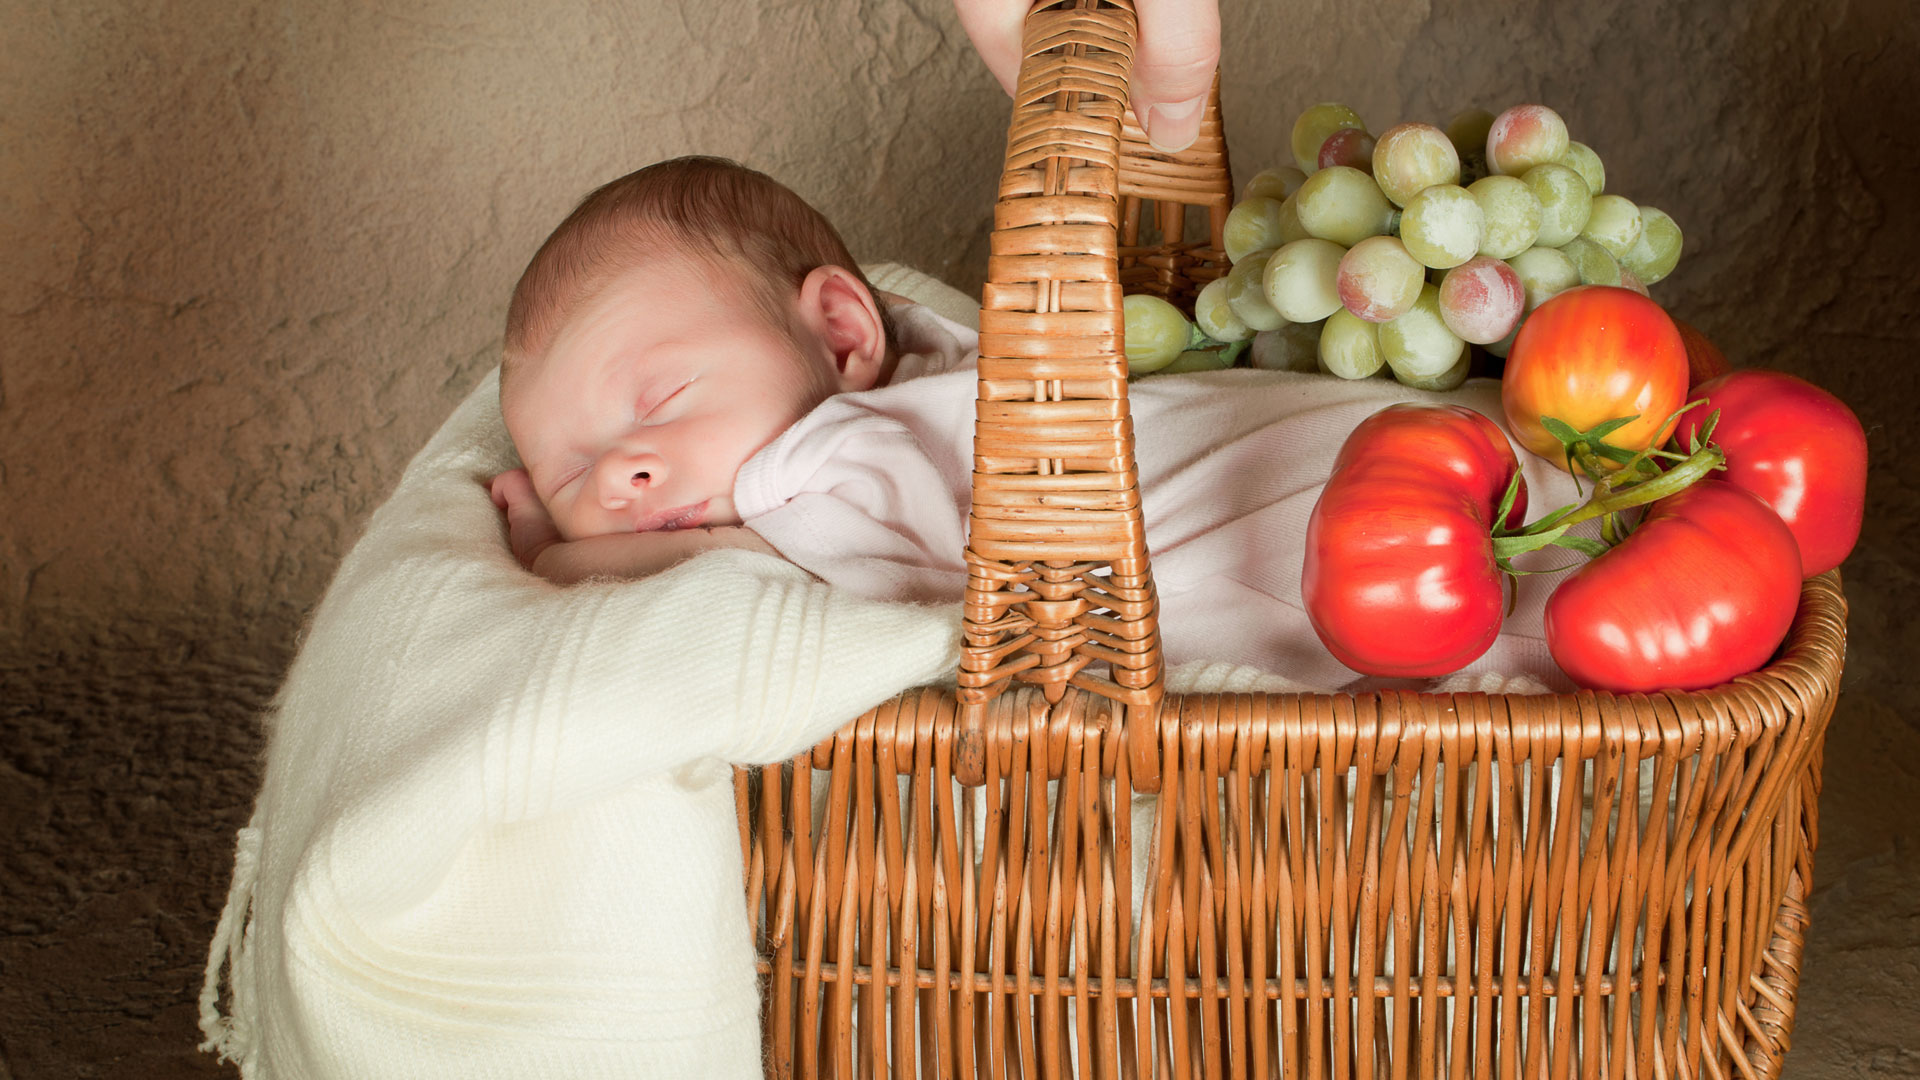 Baby in a grocery basket